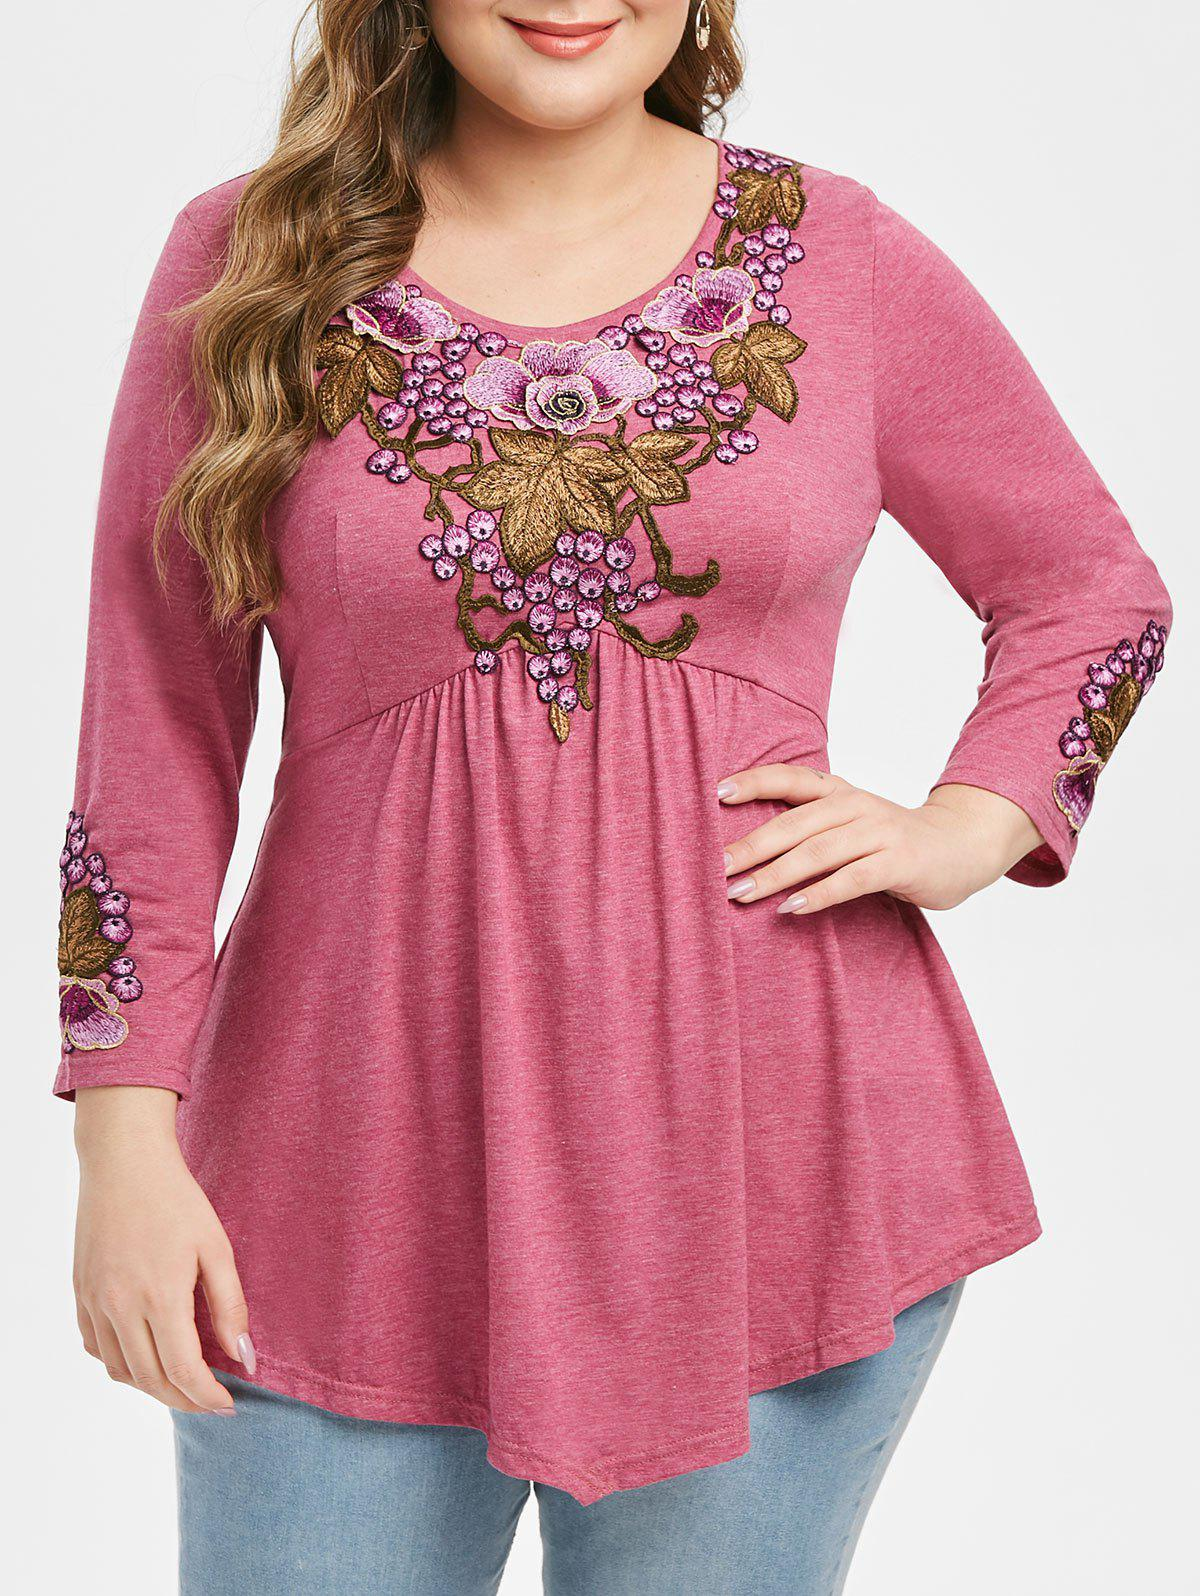 Heathered Floral Embroidered Applique Plus Size Top фото